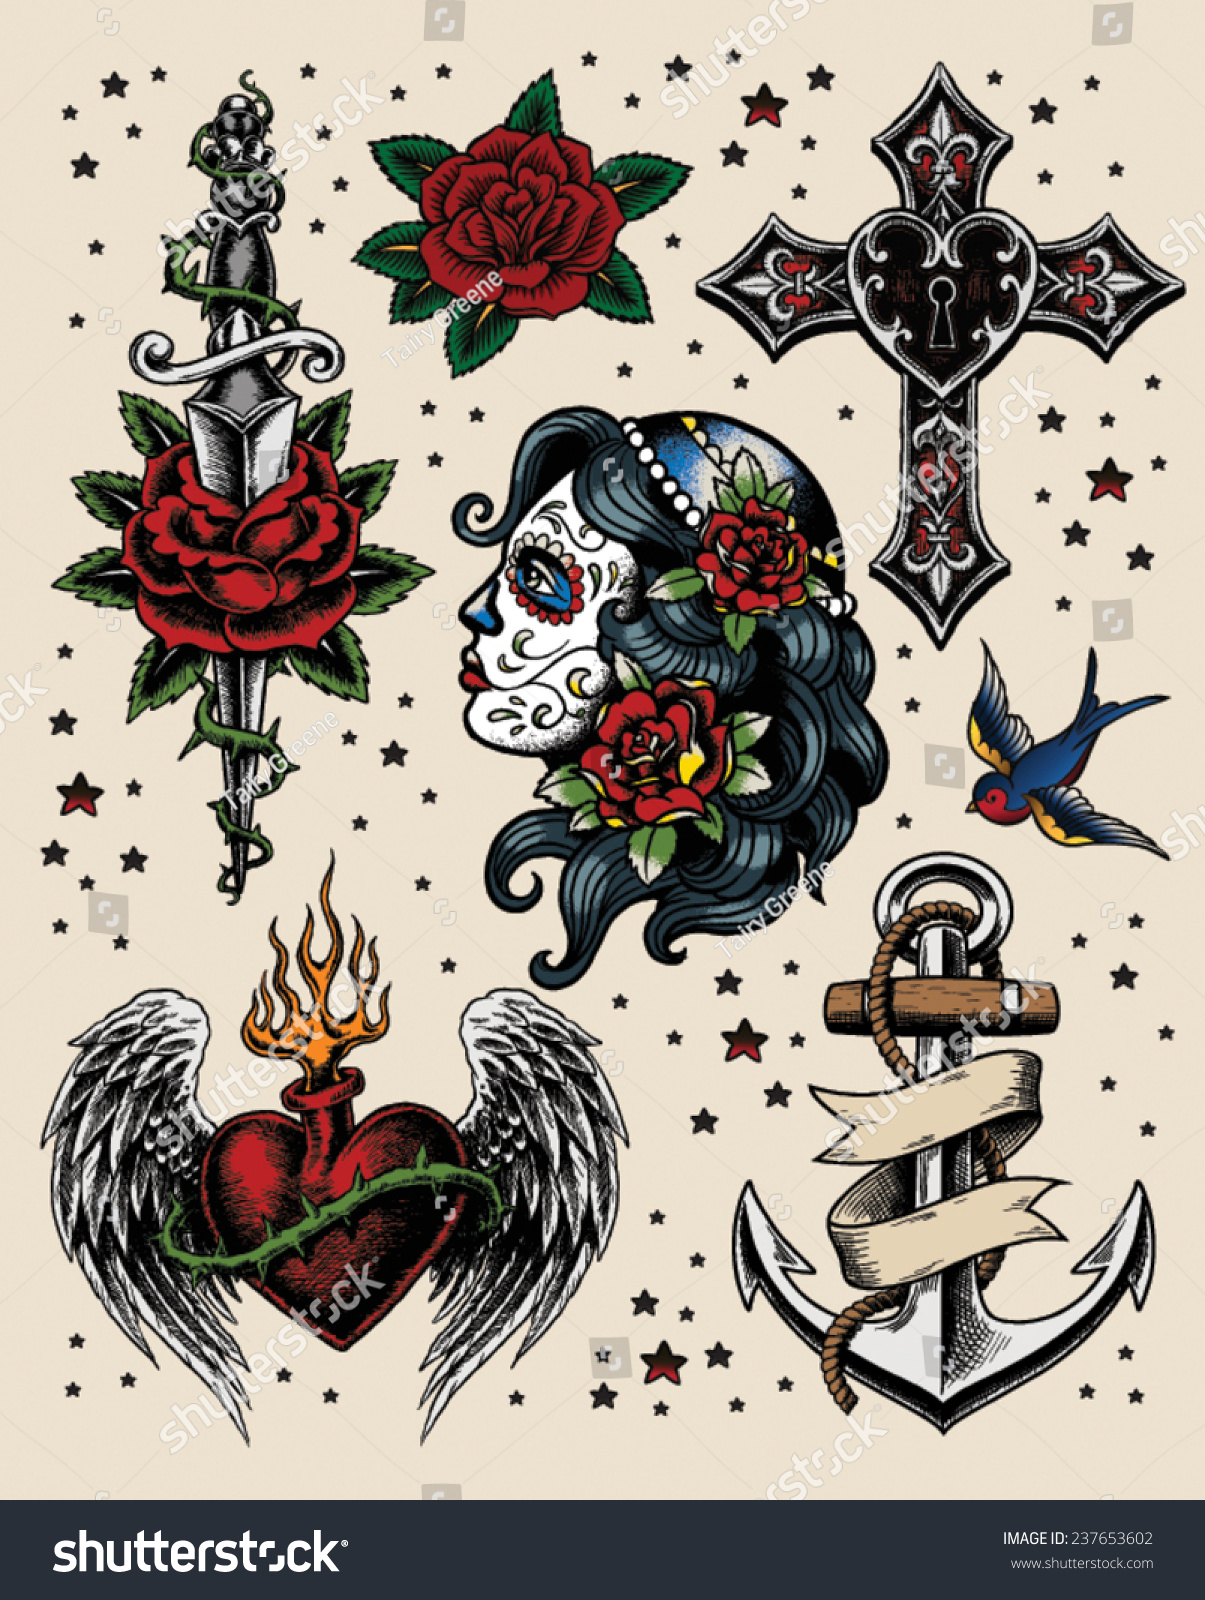 Illustration Tattoos: Tattoo Flash Illustration Set Stock Vector 237653602